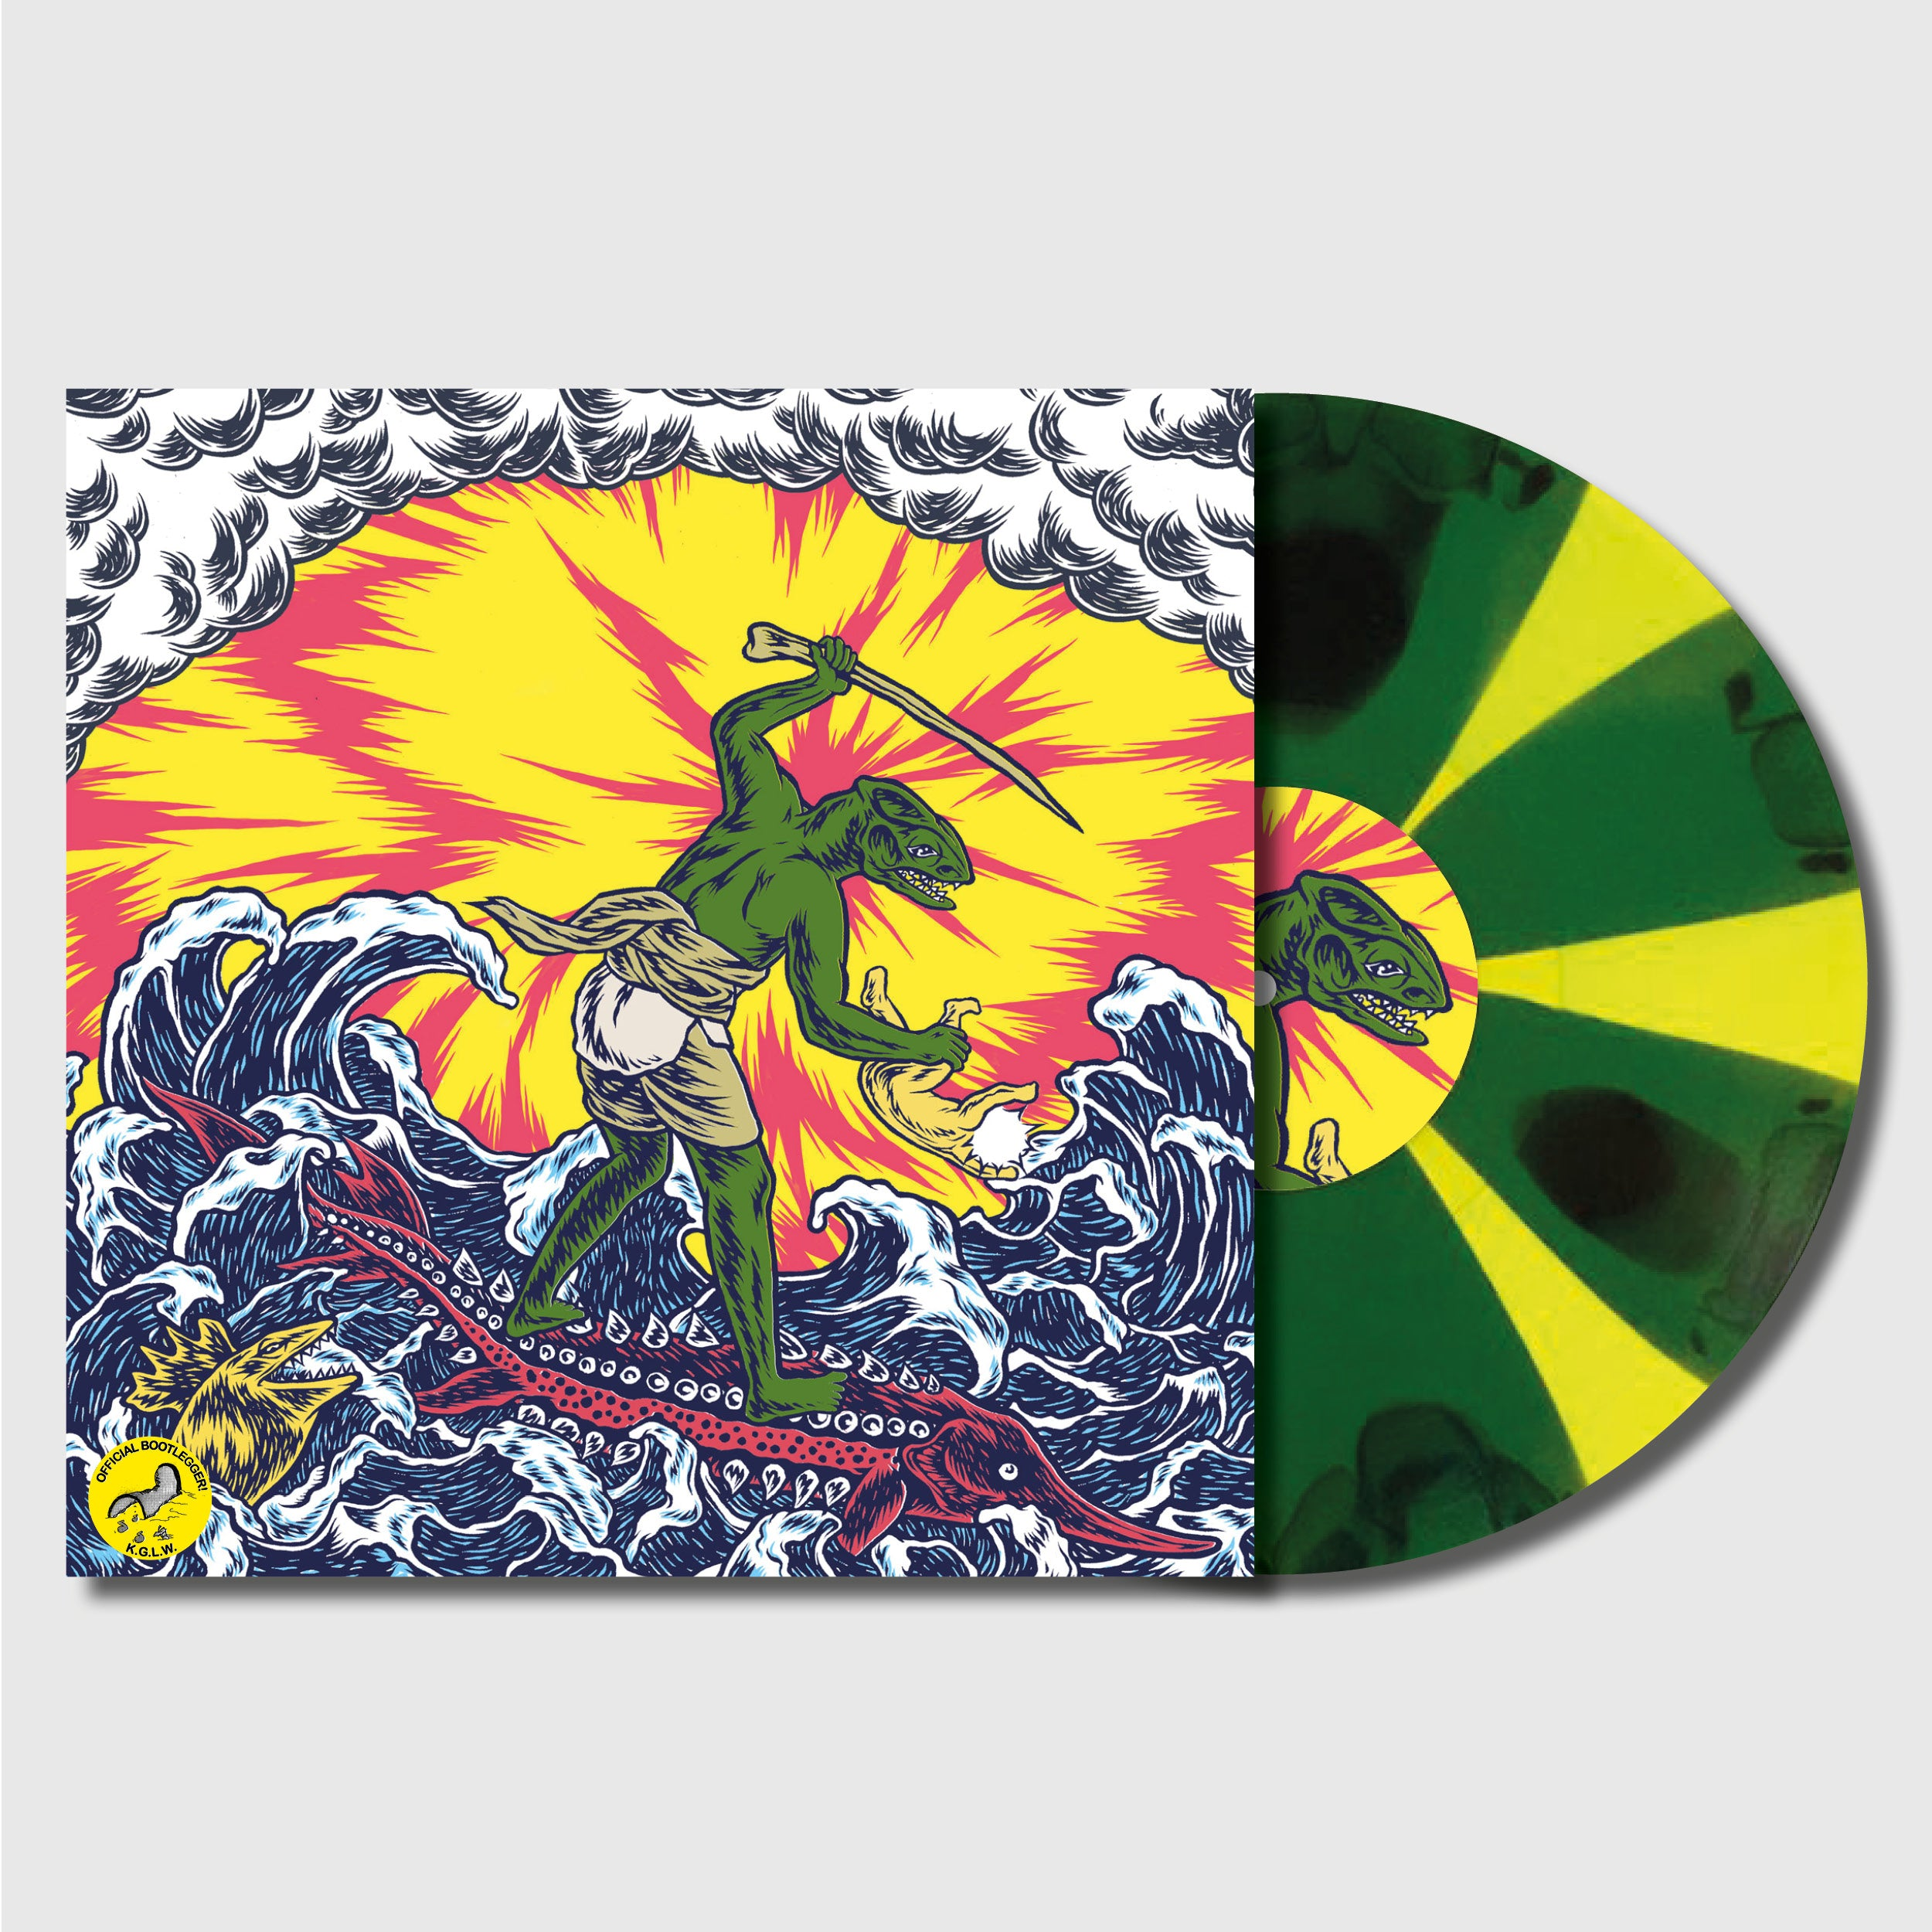 King Gizzard - Teenage Gizzard (Cornetto Bootleg Edition)